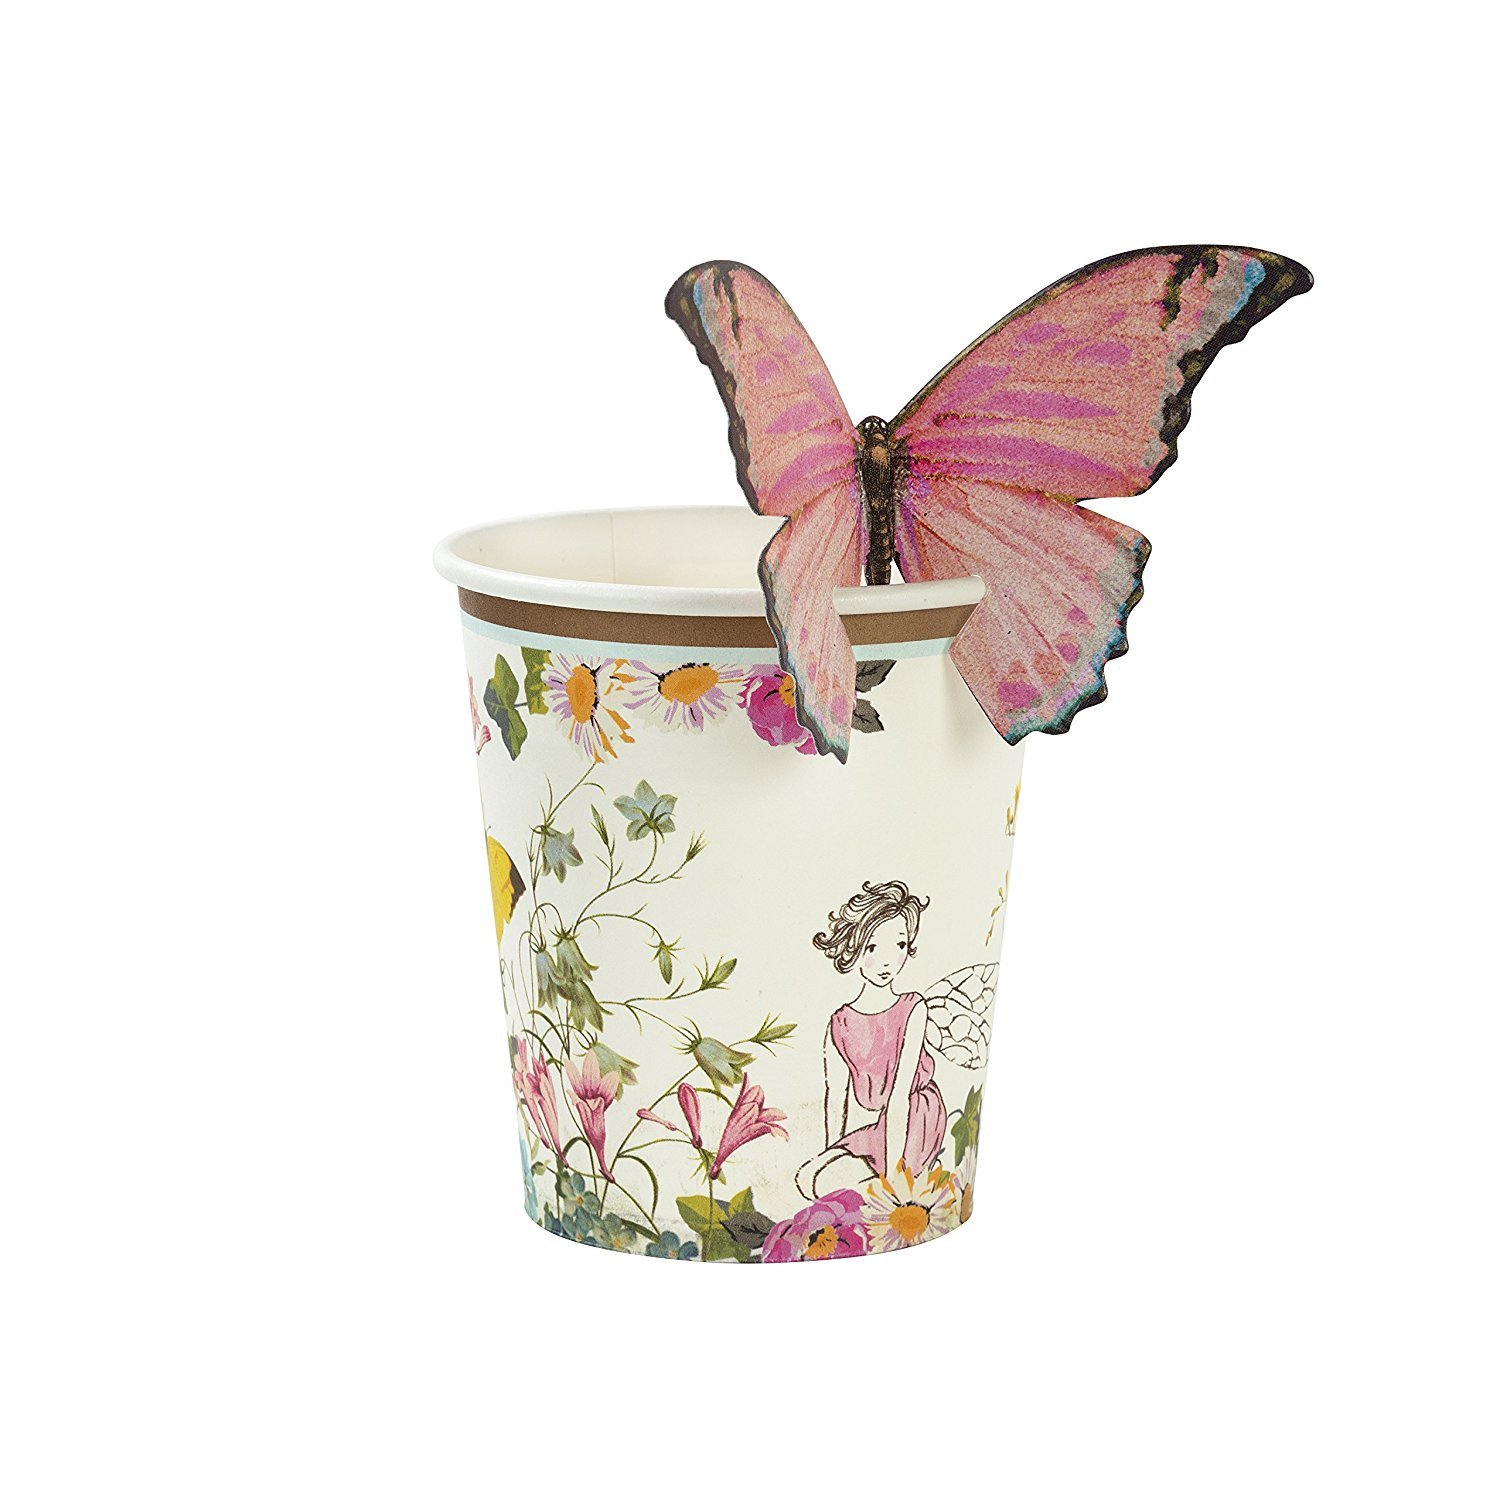 Talking Tables Truly Fairy Floral Paper Cups for a Birthday Party or General Celebration, Pink & White (24 Pack)